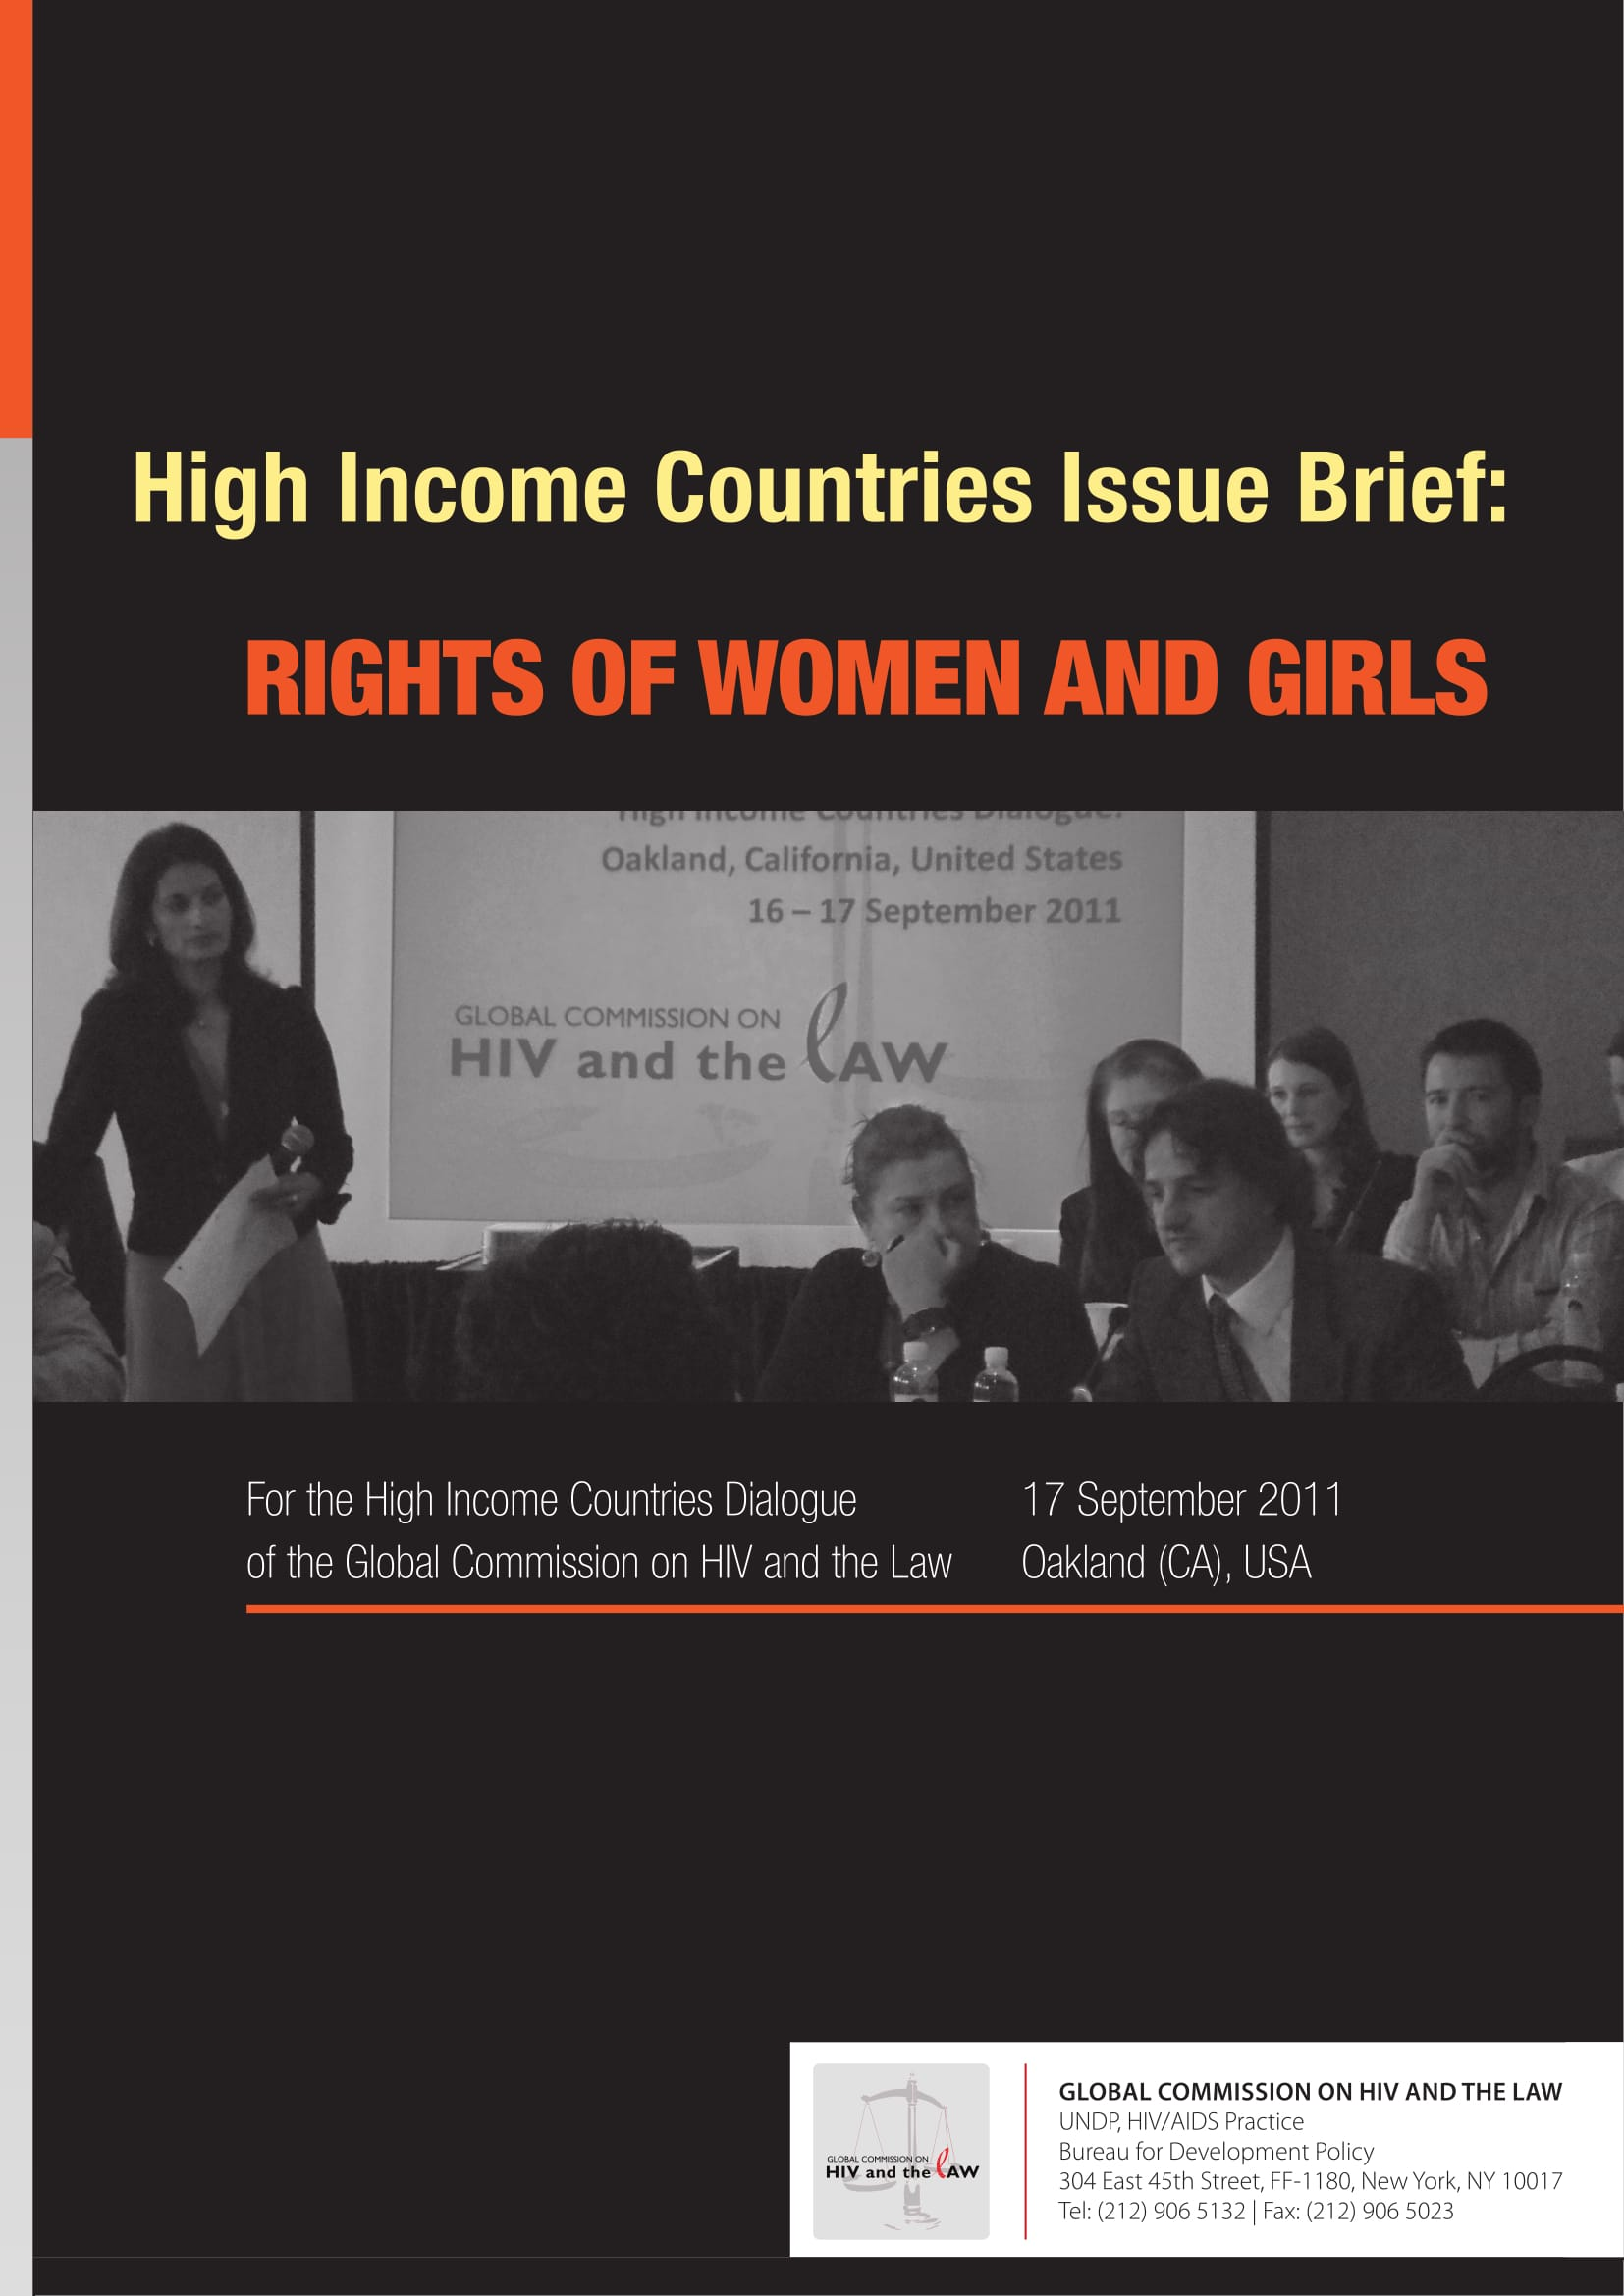 High Income Countries Issue Brief: Rights of women and girls